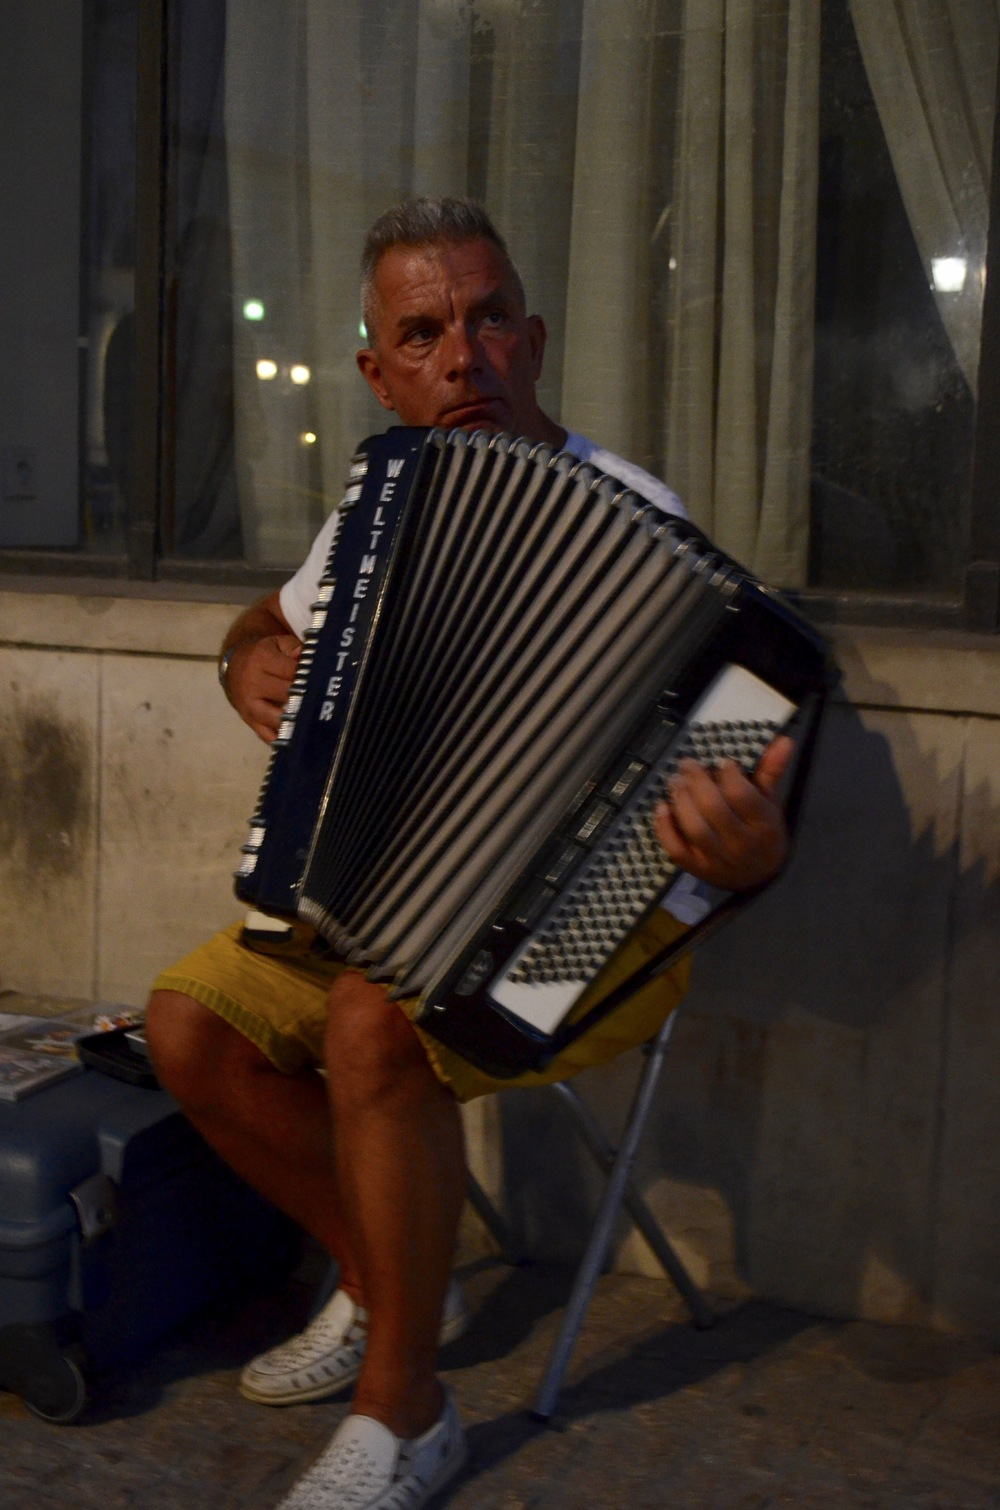 accordionplayer.jpg